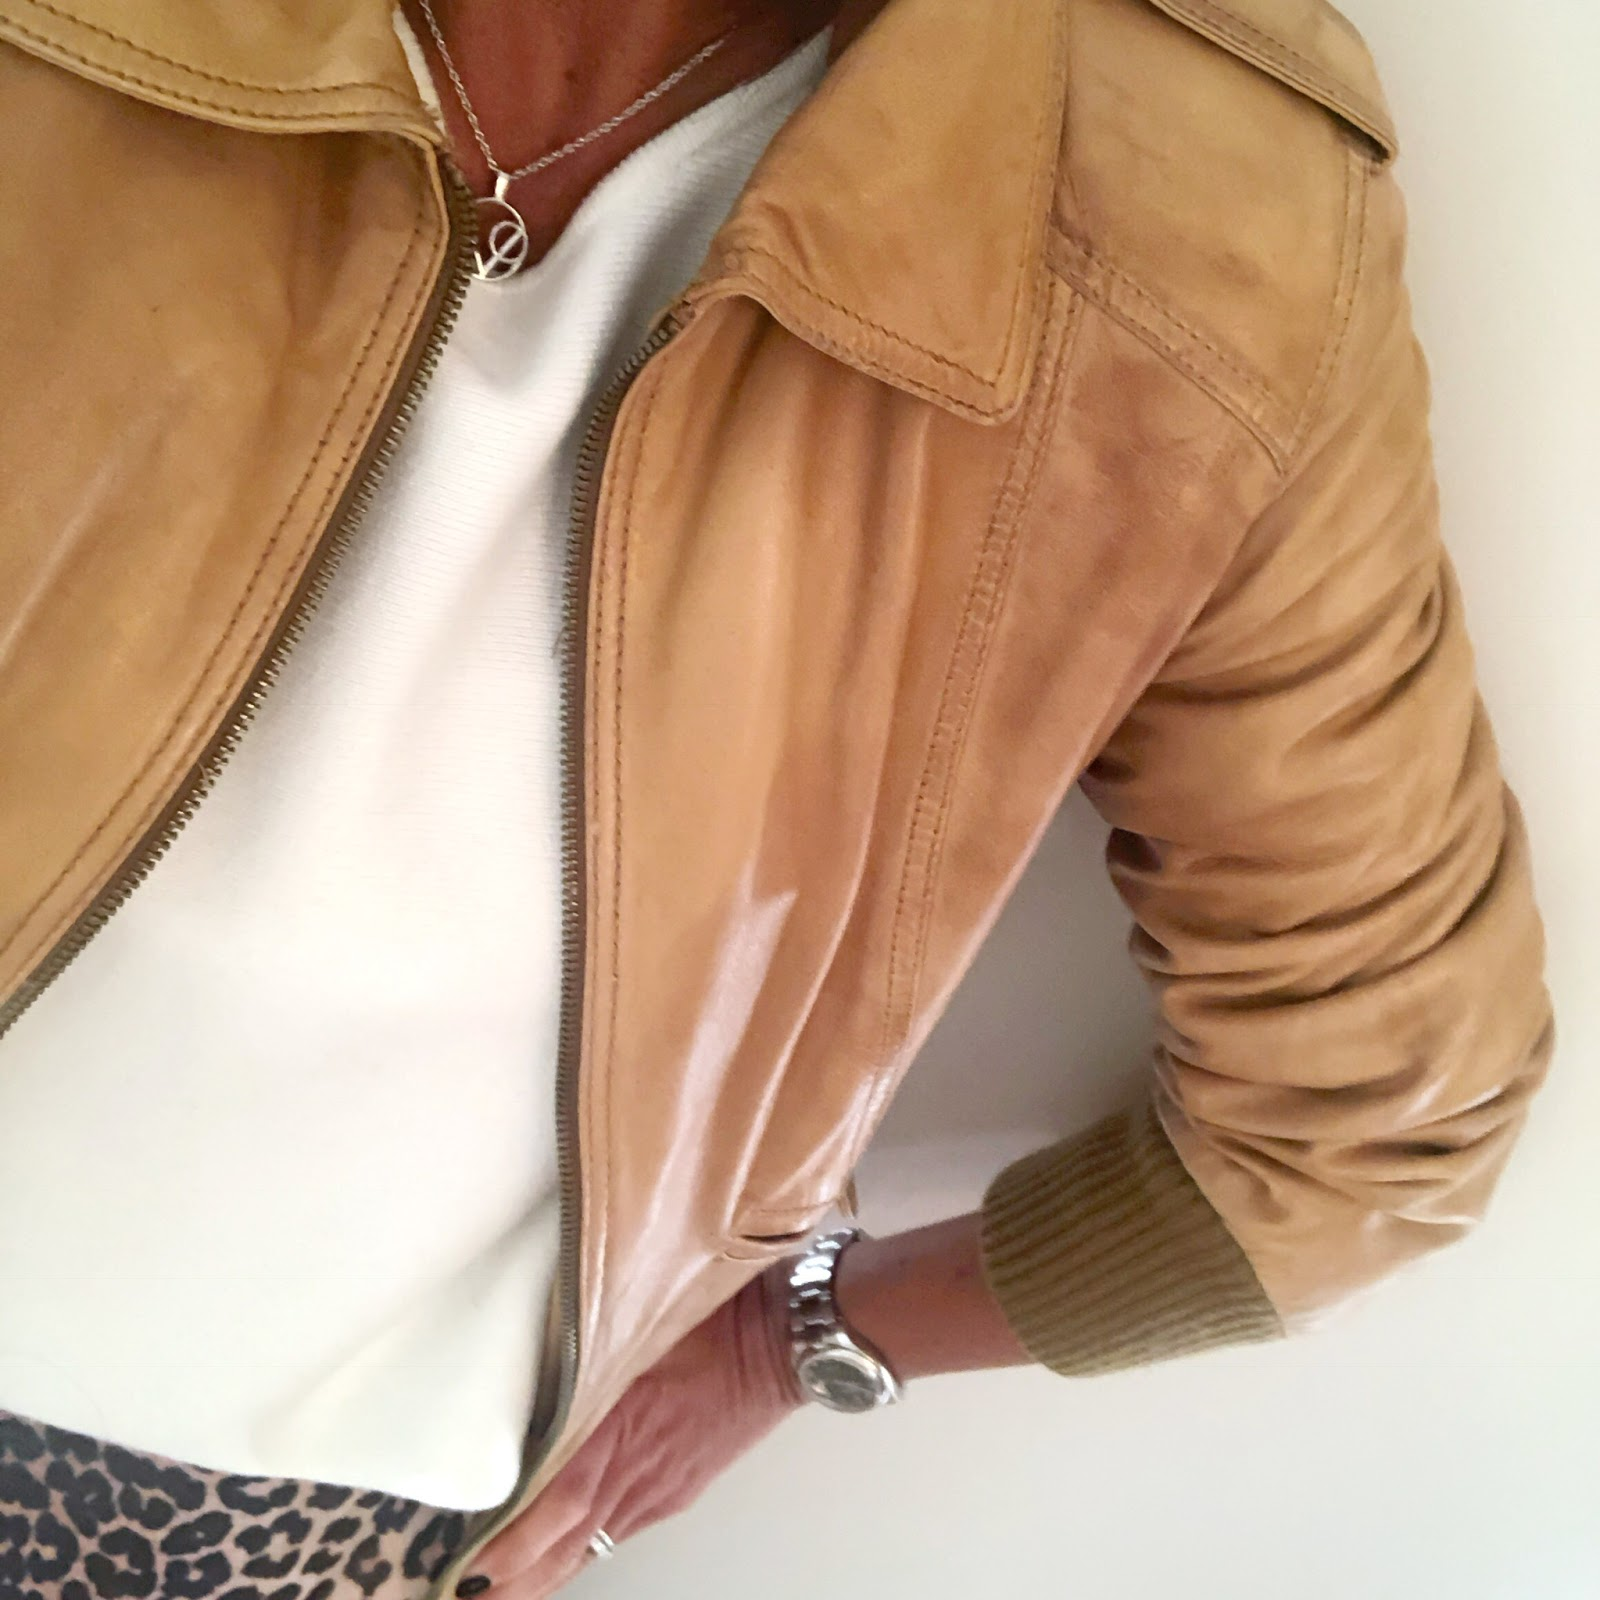 my midlife fashion, village england misterton necklace, massimo dutti leather tan jacket, massimo dutti boxy cream knit jumper, hudson kiver ankle boots, ganni leopard print frill detail wrap over skirt